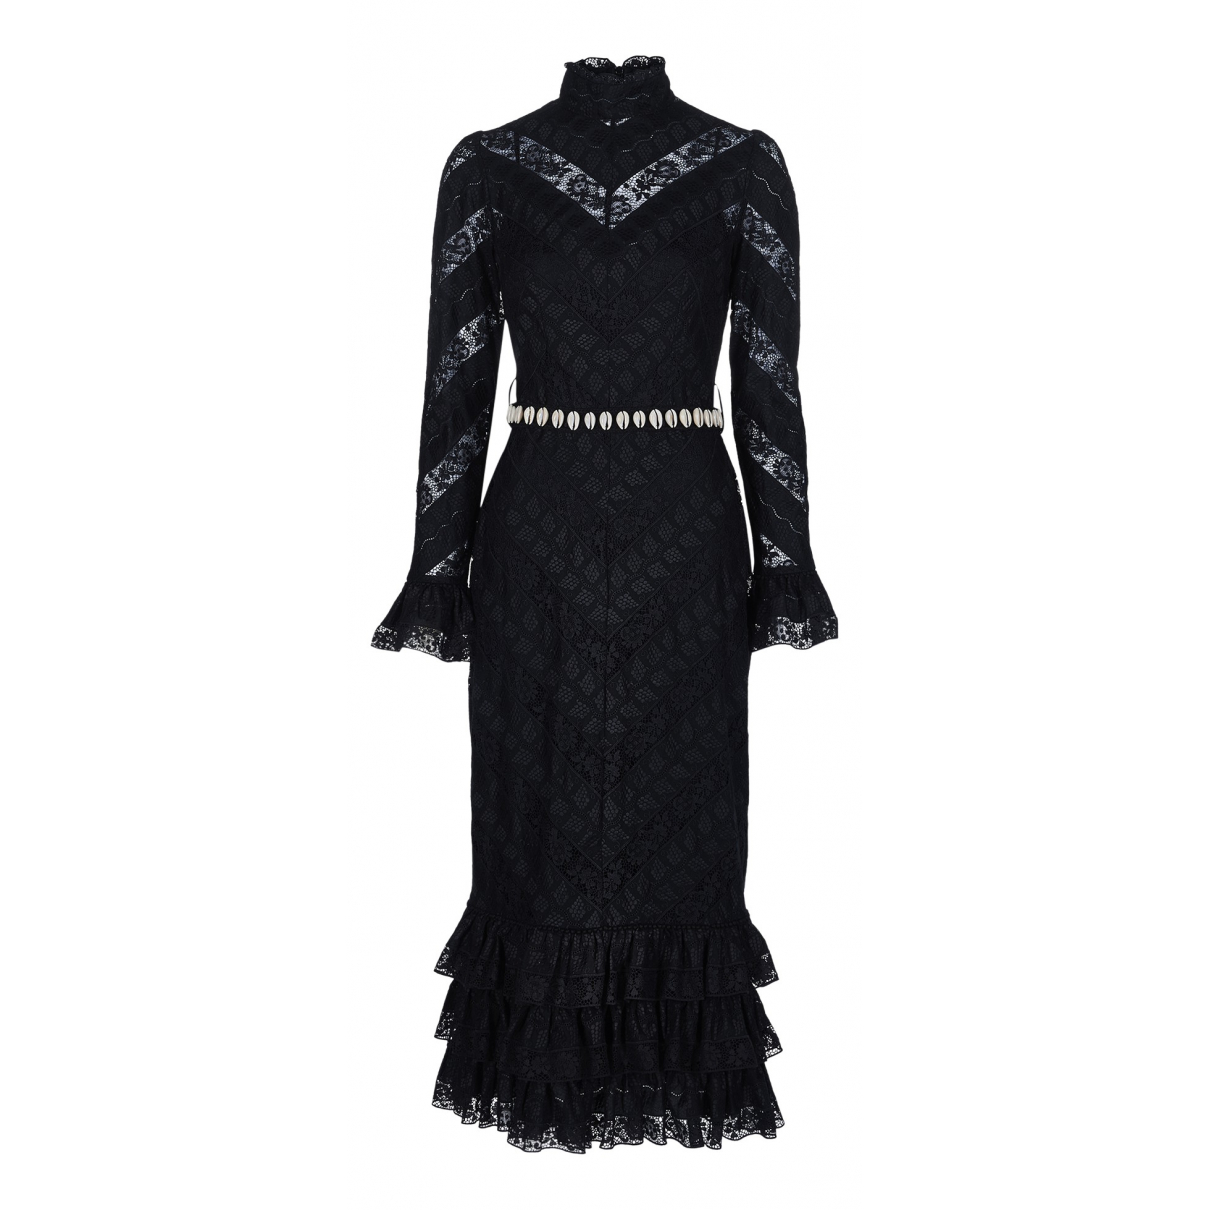 Zimmermann N Black Cotton dress for Women 10 UK